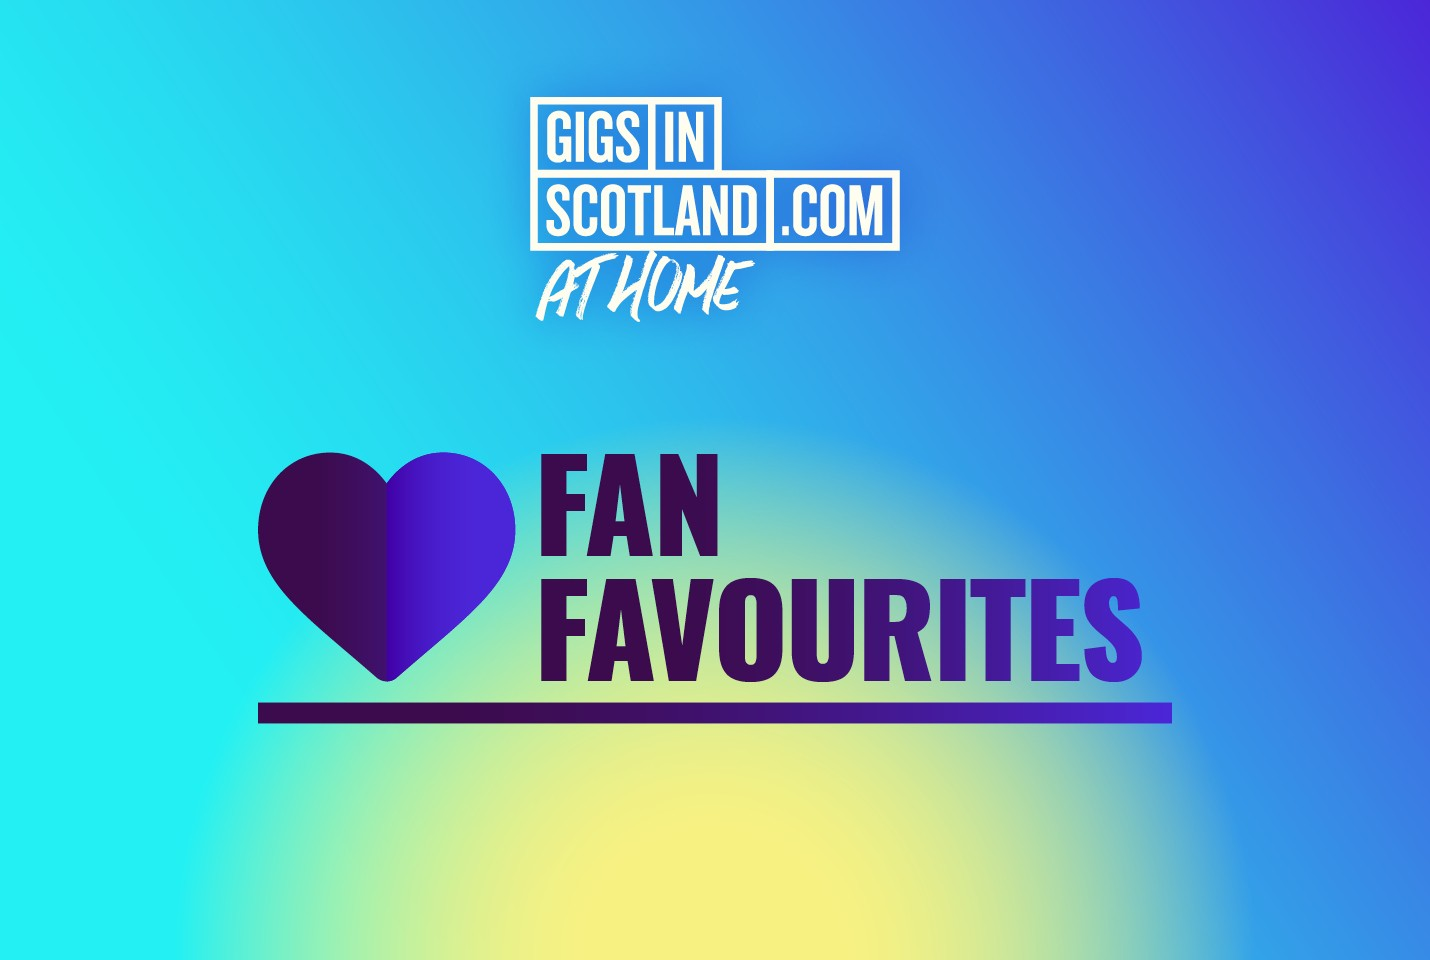 Fan Favourites - If You Could Only Listen To One Song For The Rest Of Your Life What Would It Be?